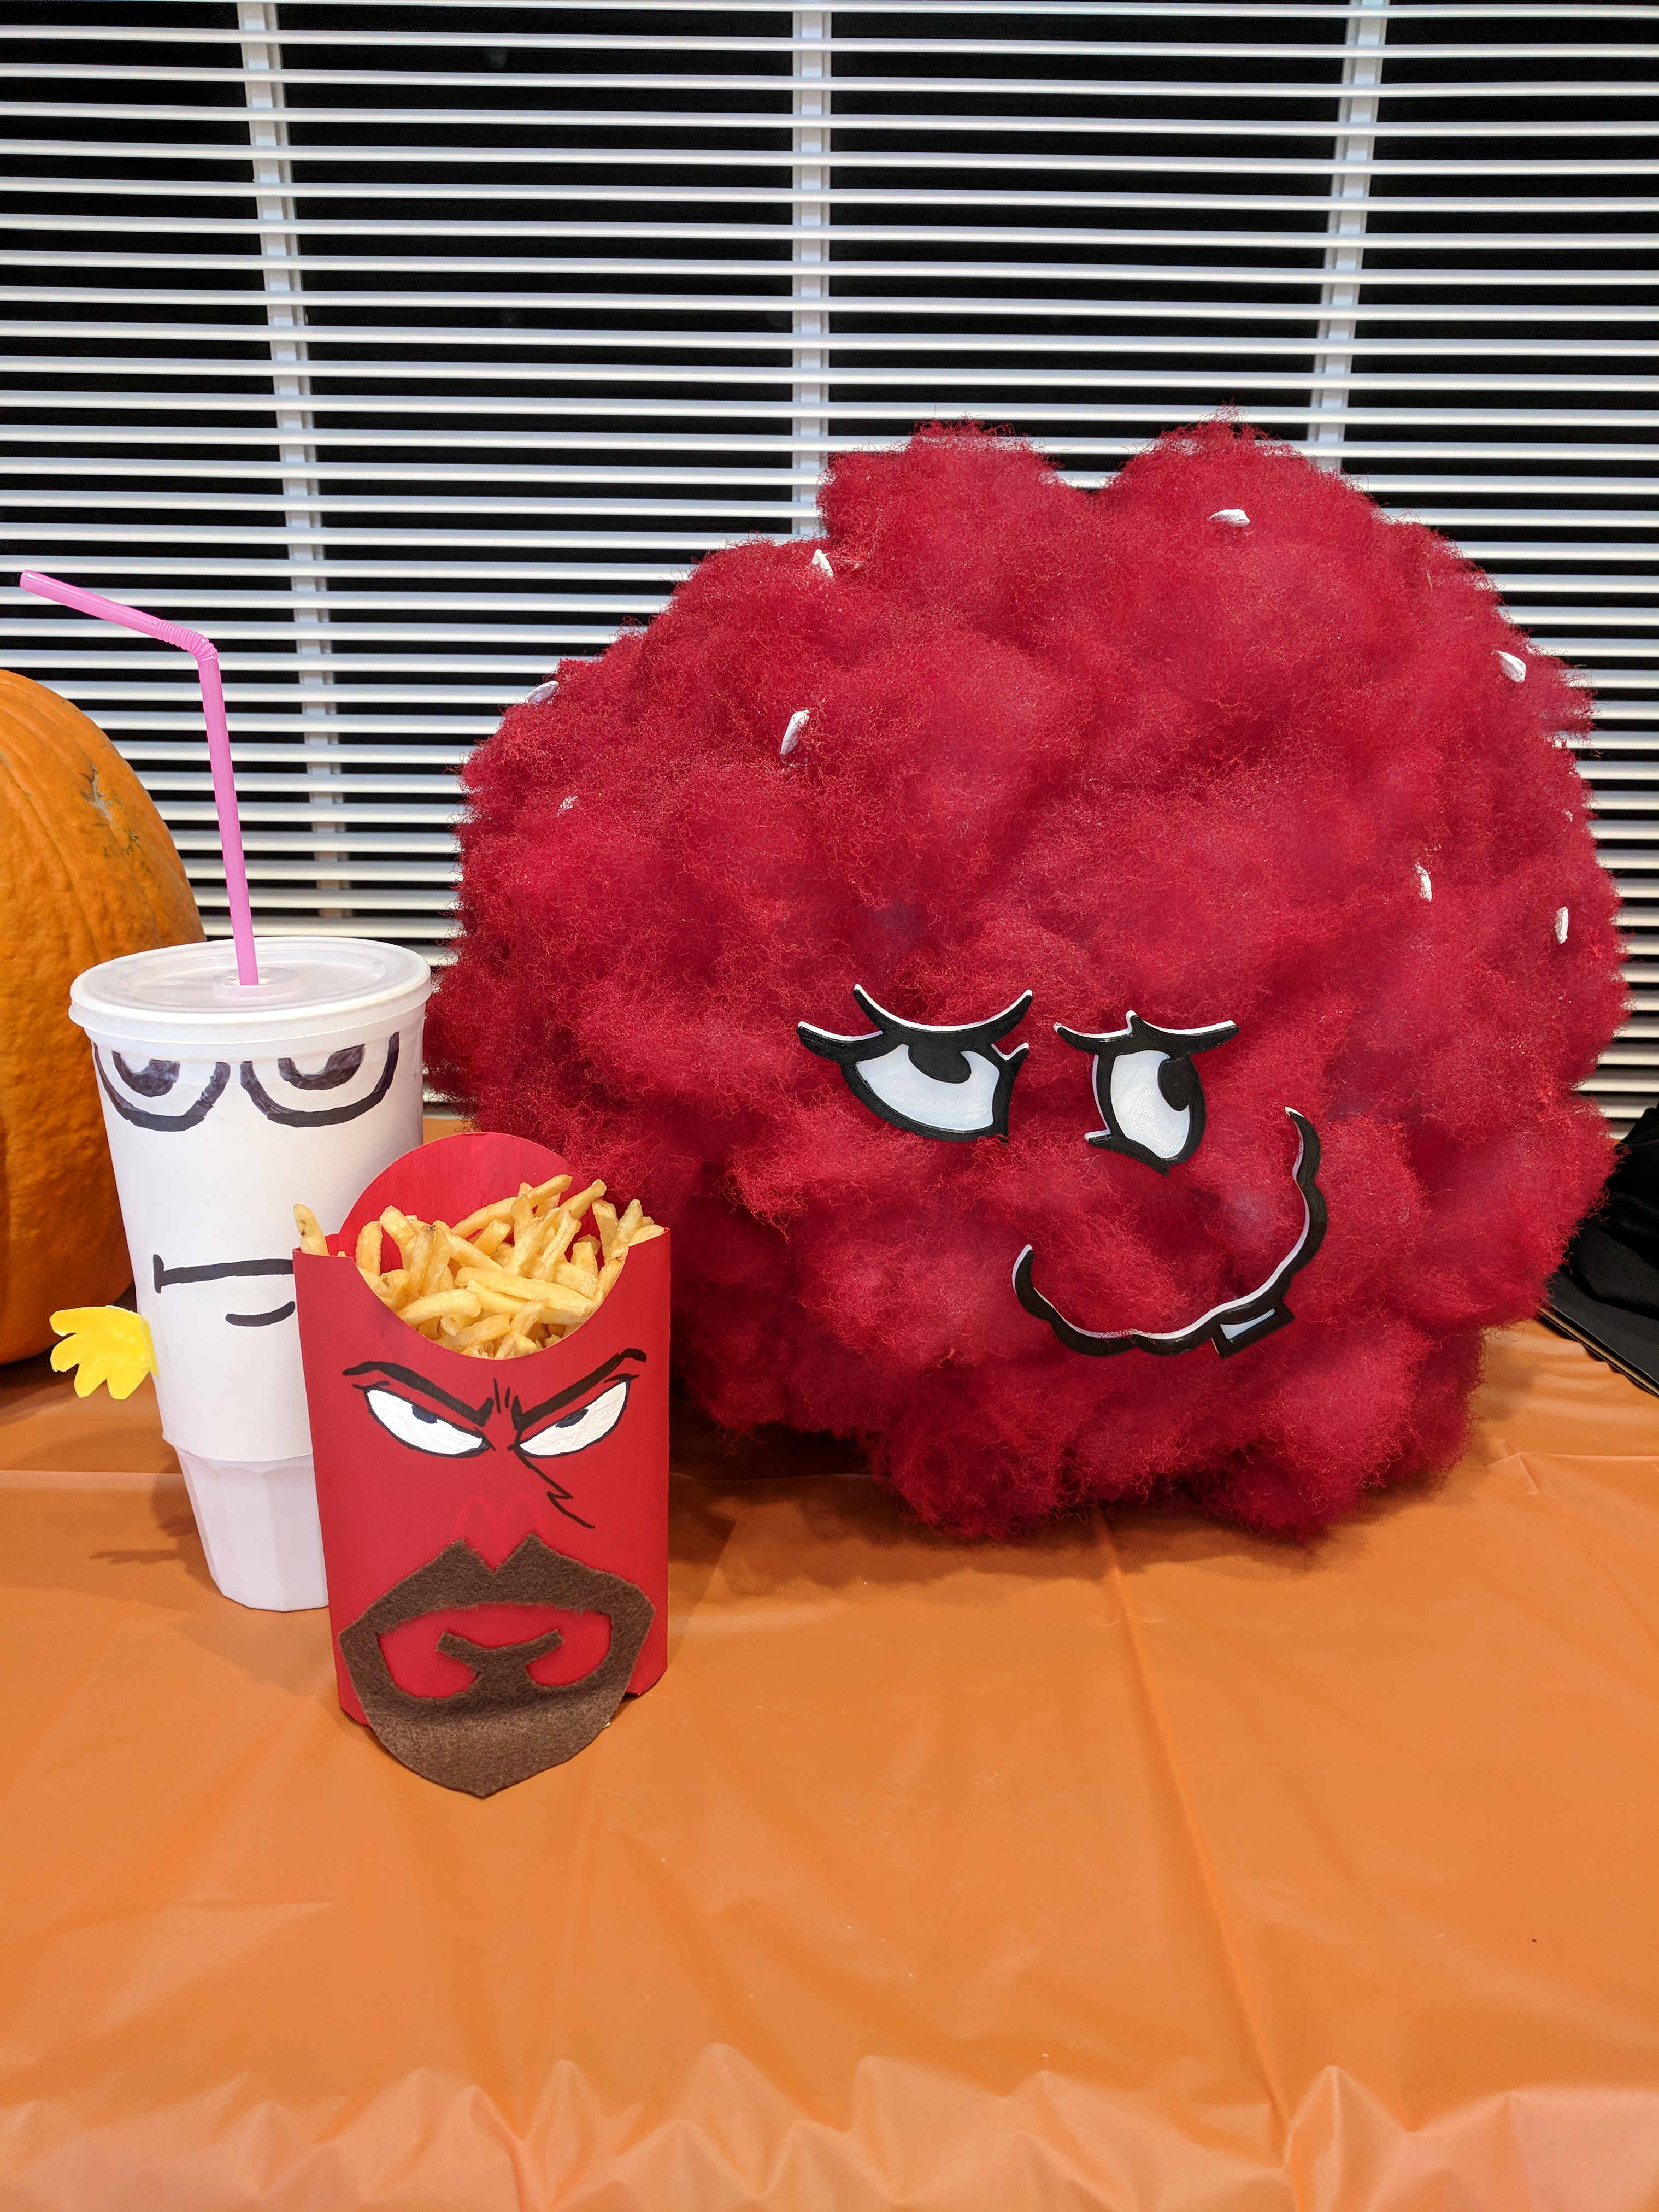 7651be0340458 Meatwad Pumpkin Face Aqua Teen Hunger Force (ATHF). by icefreez Oct 24